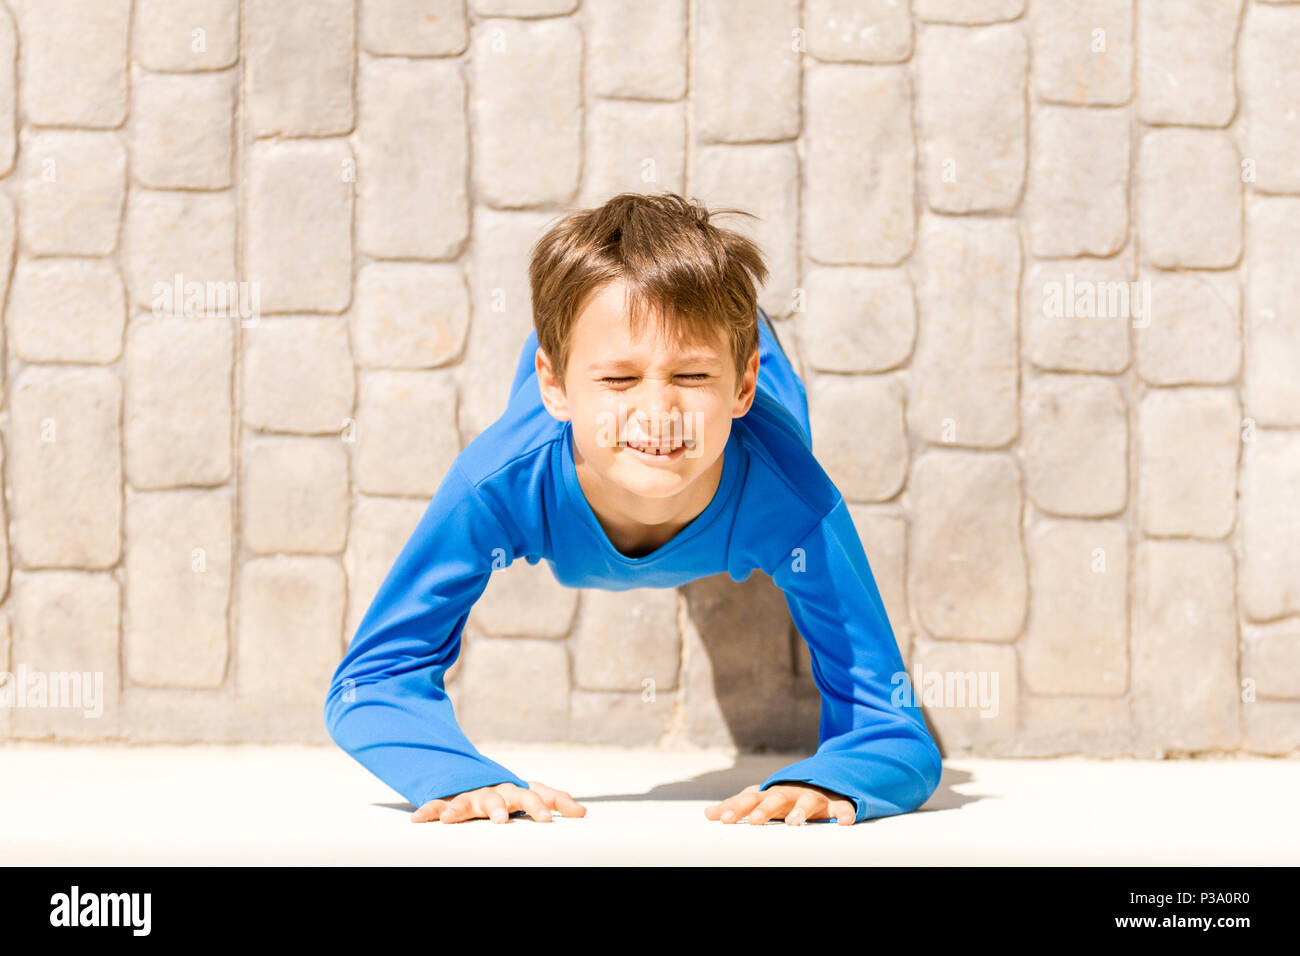 Top view of little boy looking up and enjoying the sun - Stock Image